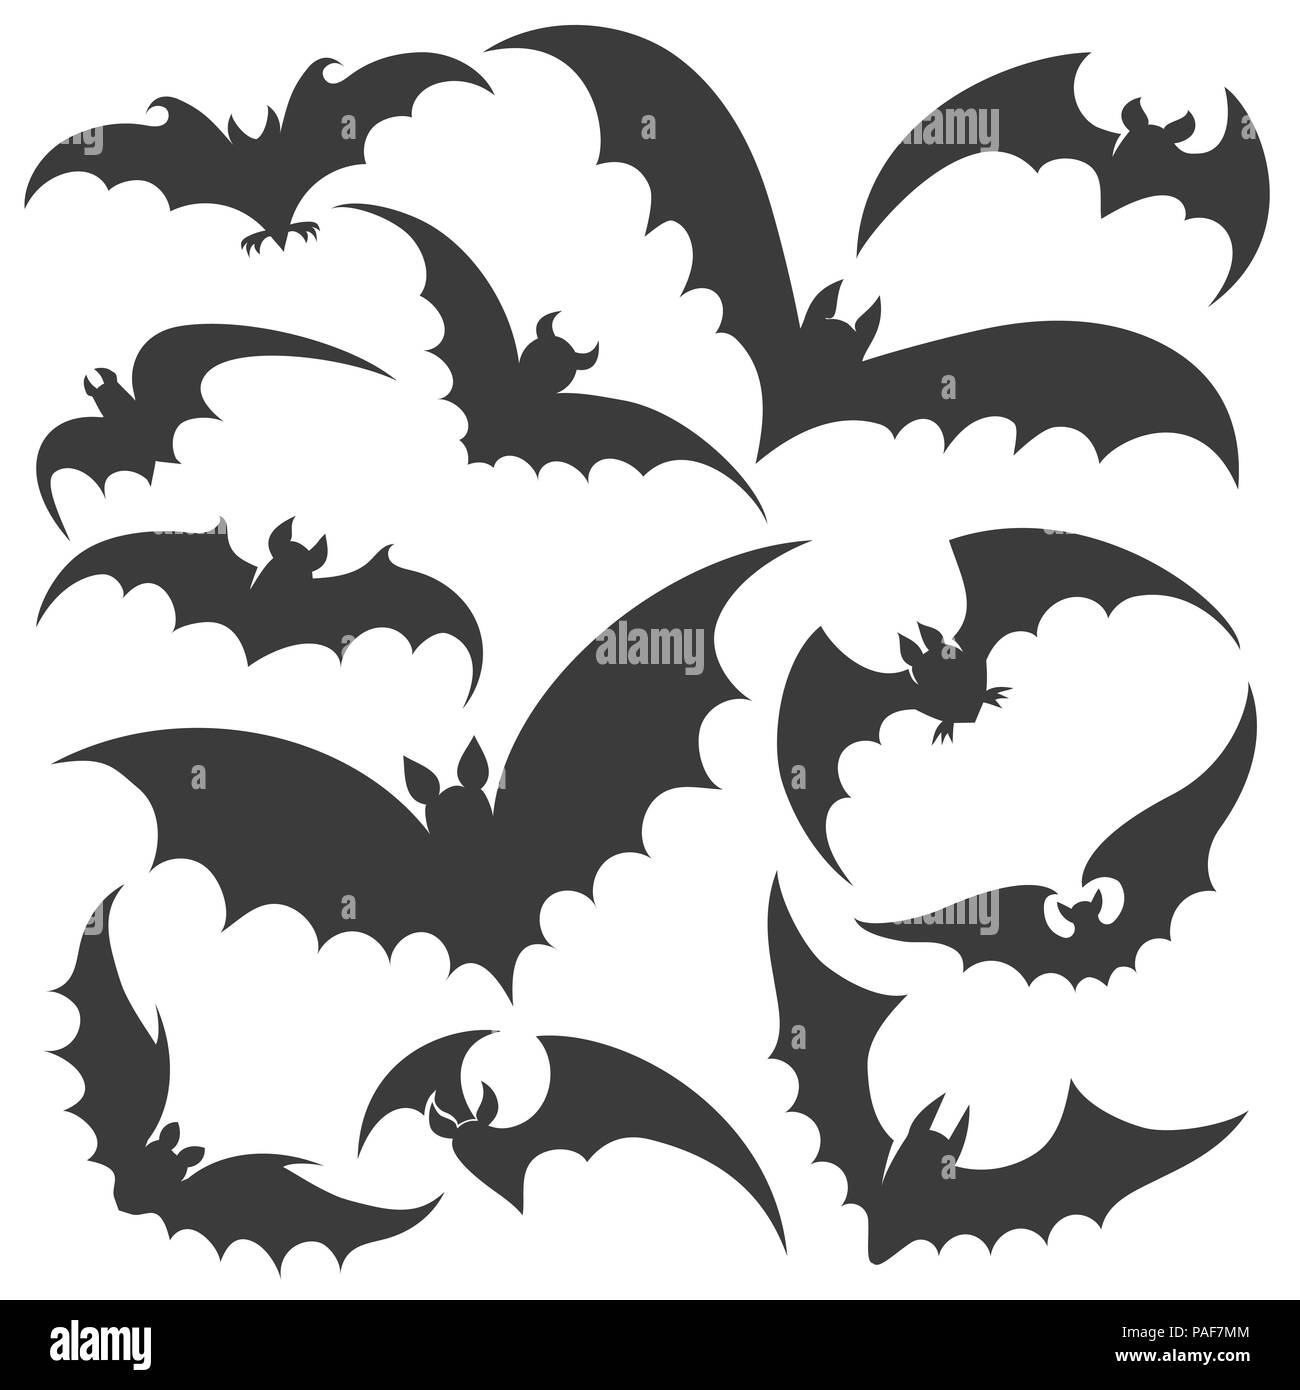 Halloween Vector Black And White.Bat Silhouettes Vector Bats Silhouette Set Halloween Scary Night